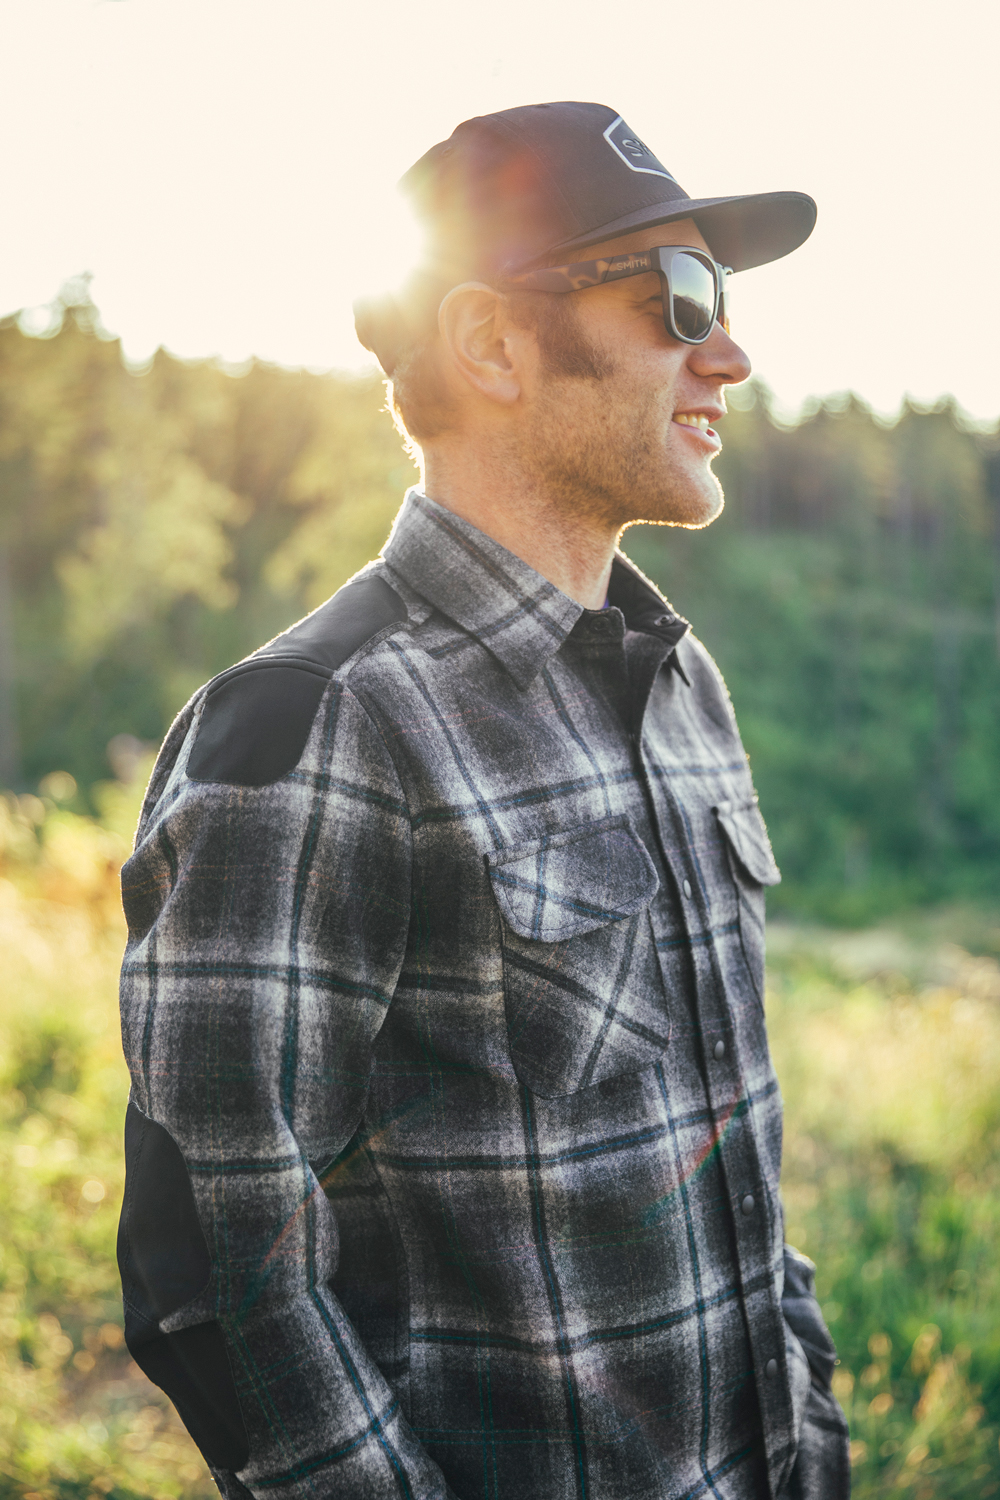 A man in a plaid shirt stands in the forest